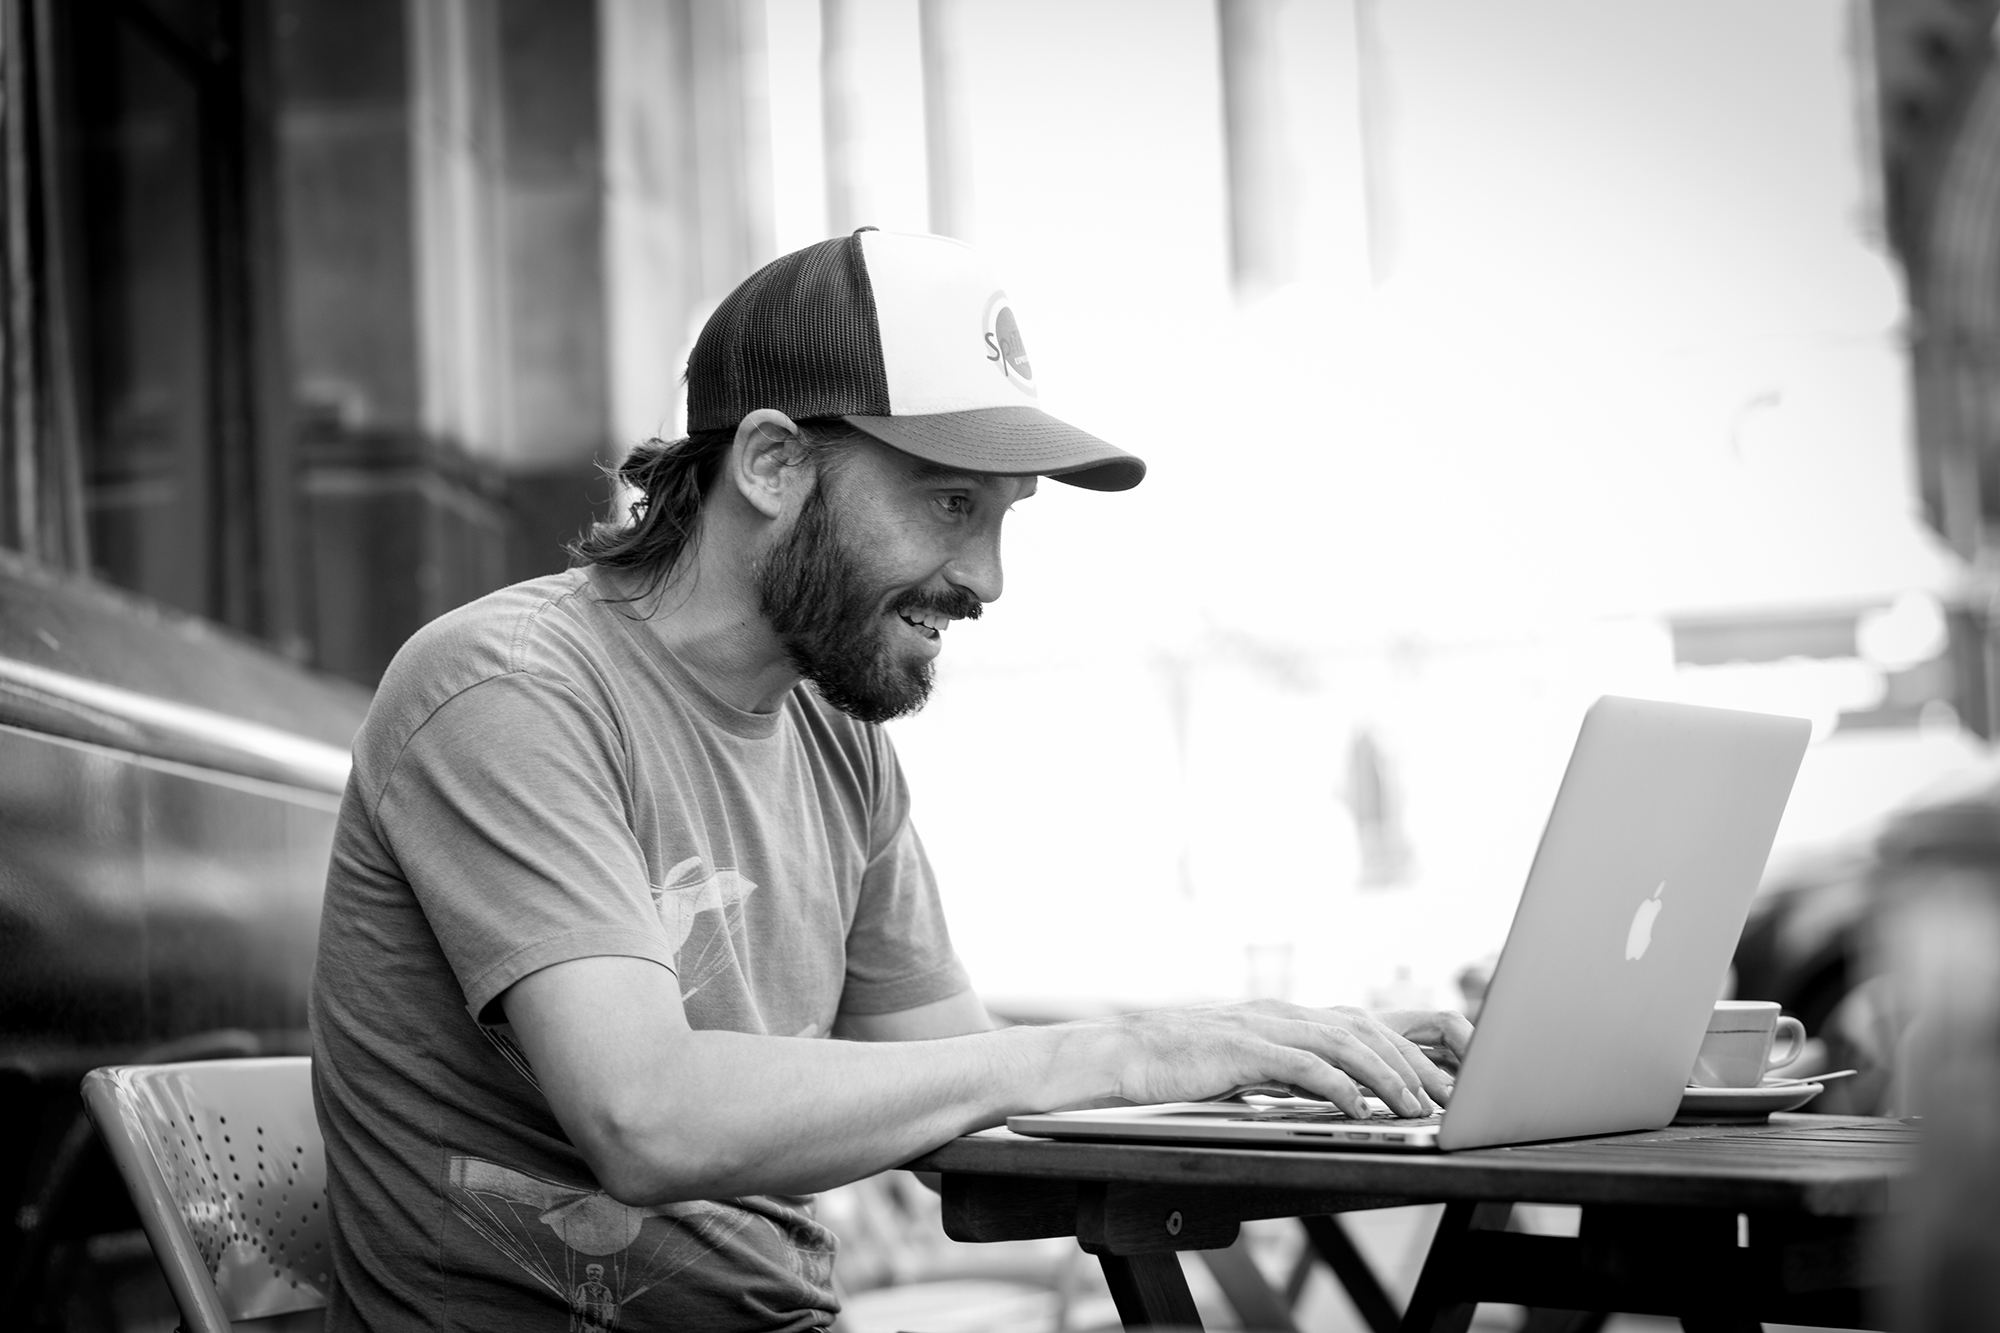 Man on Laptop | by McAteer Photograph